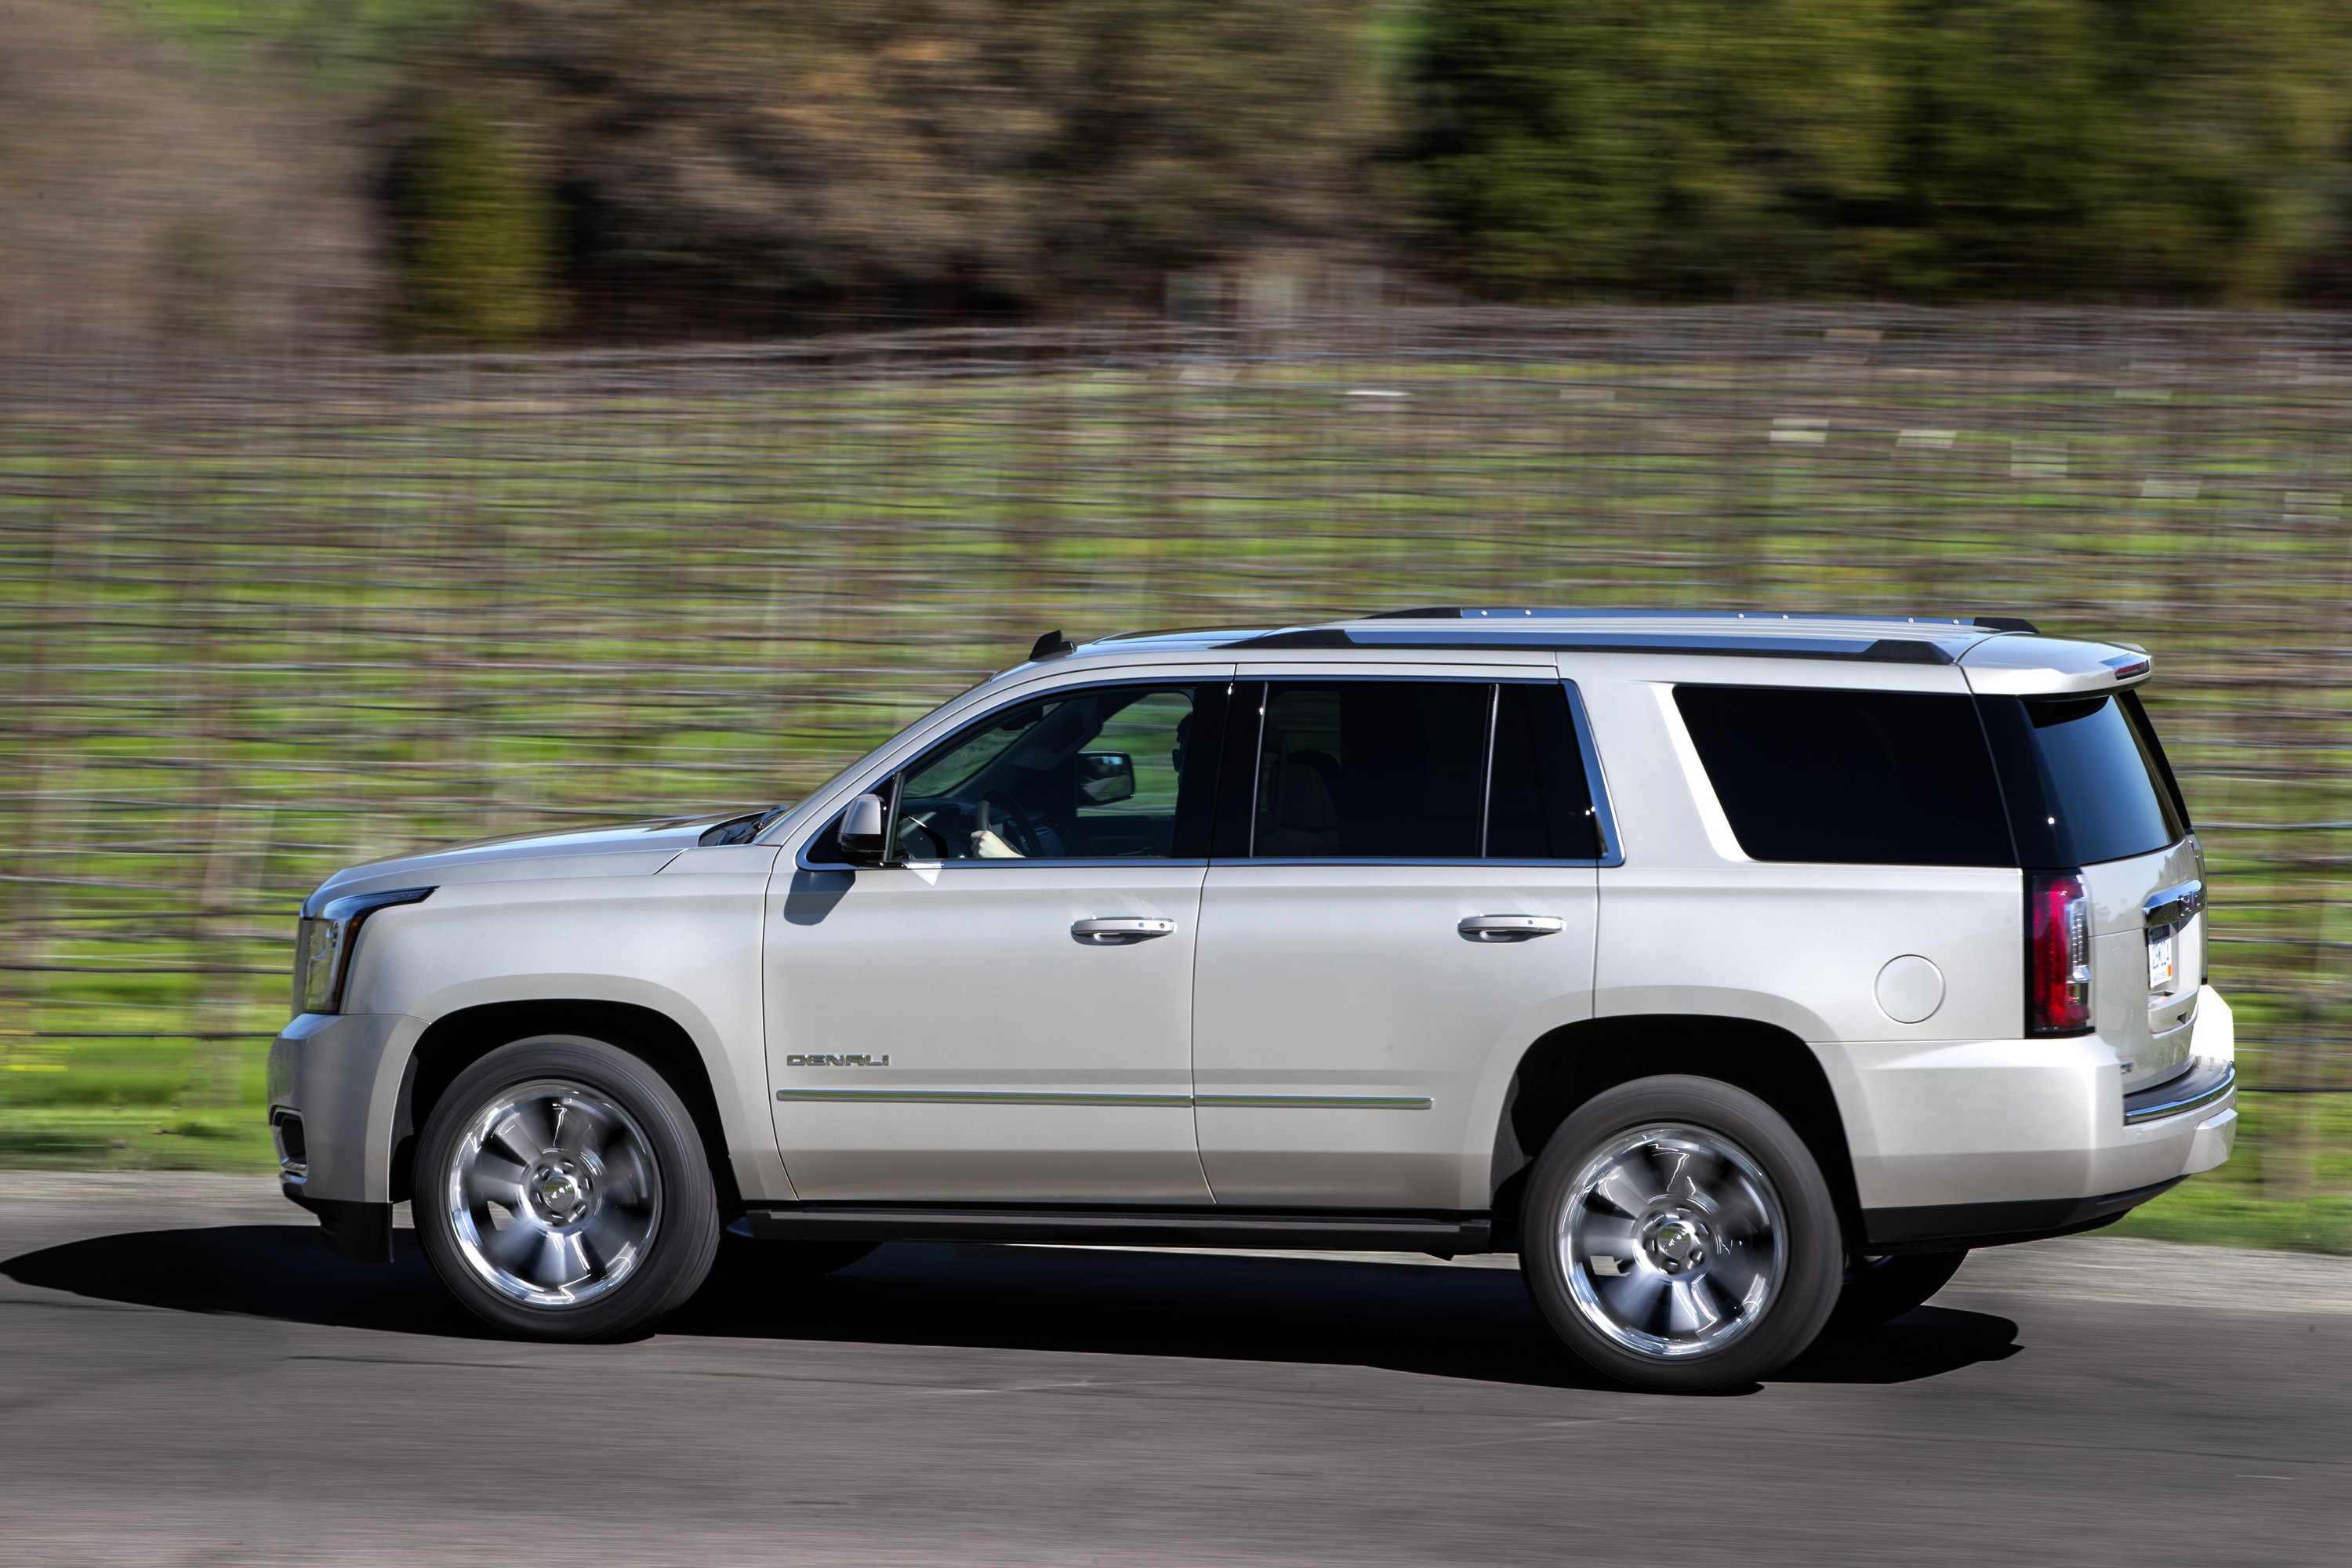 yukon denali gmc xl tahoe slt suburban chevrolet cars quick take automatic drive speed autoevolution colors side truck specs motortrend